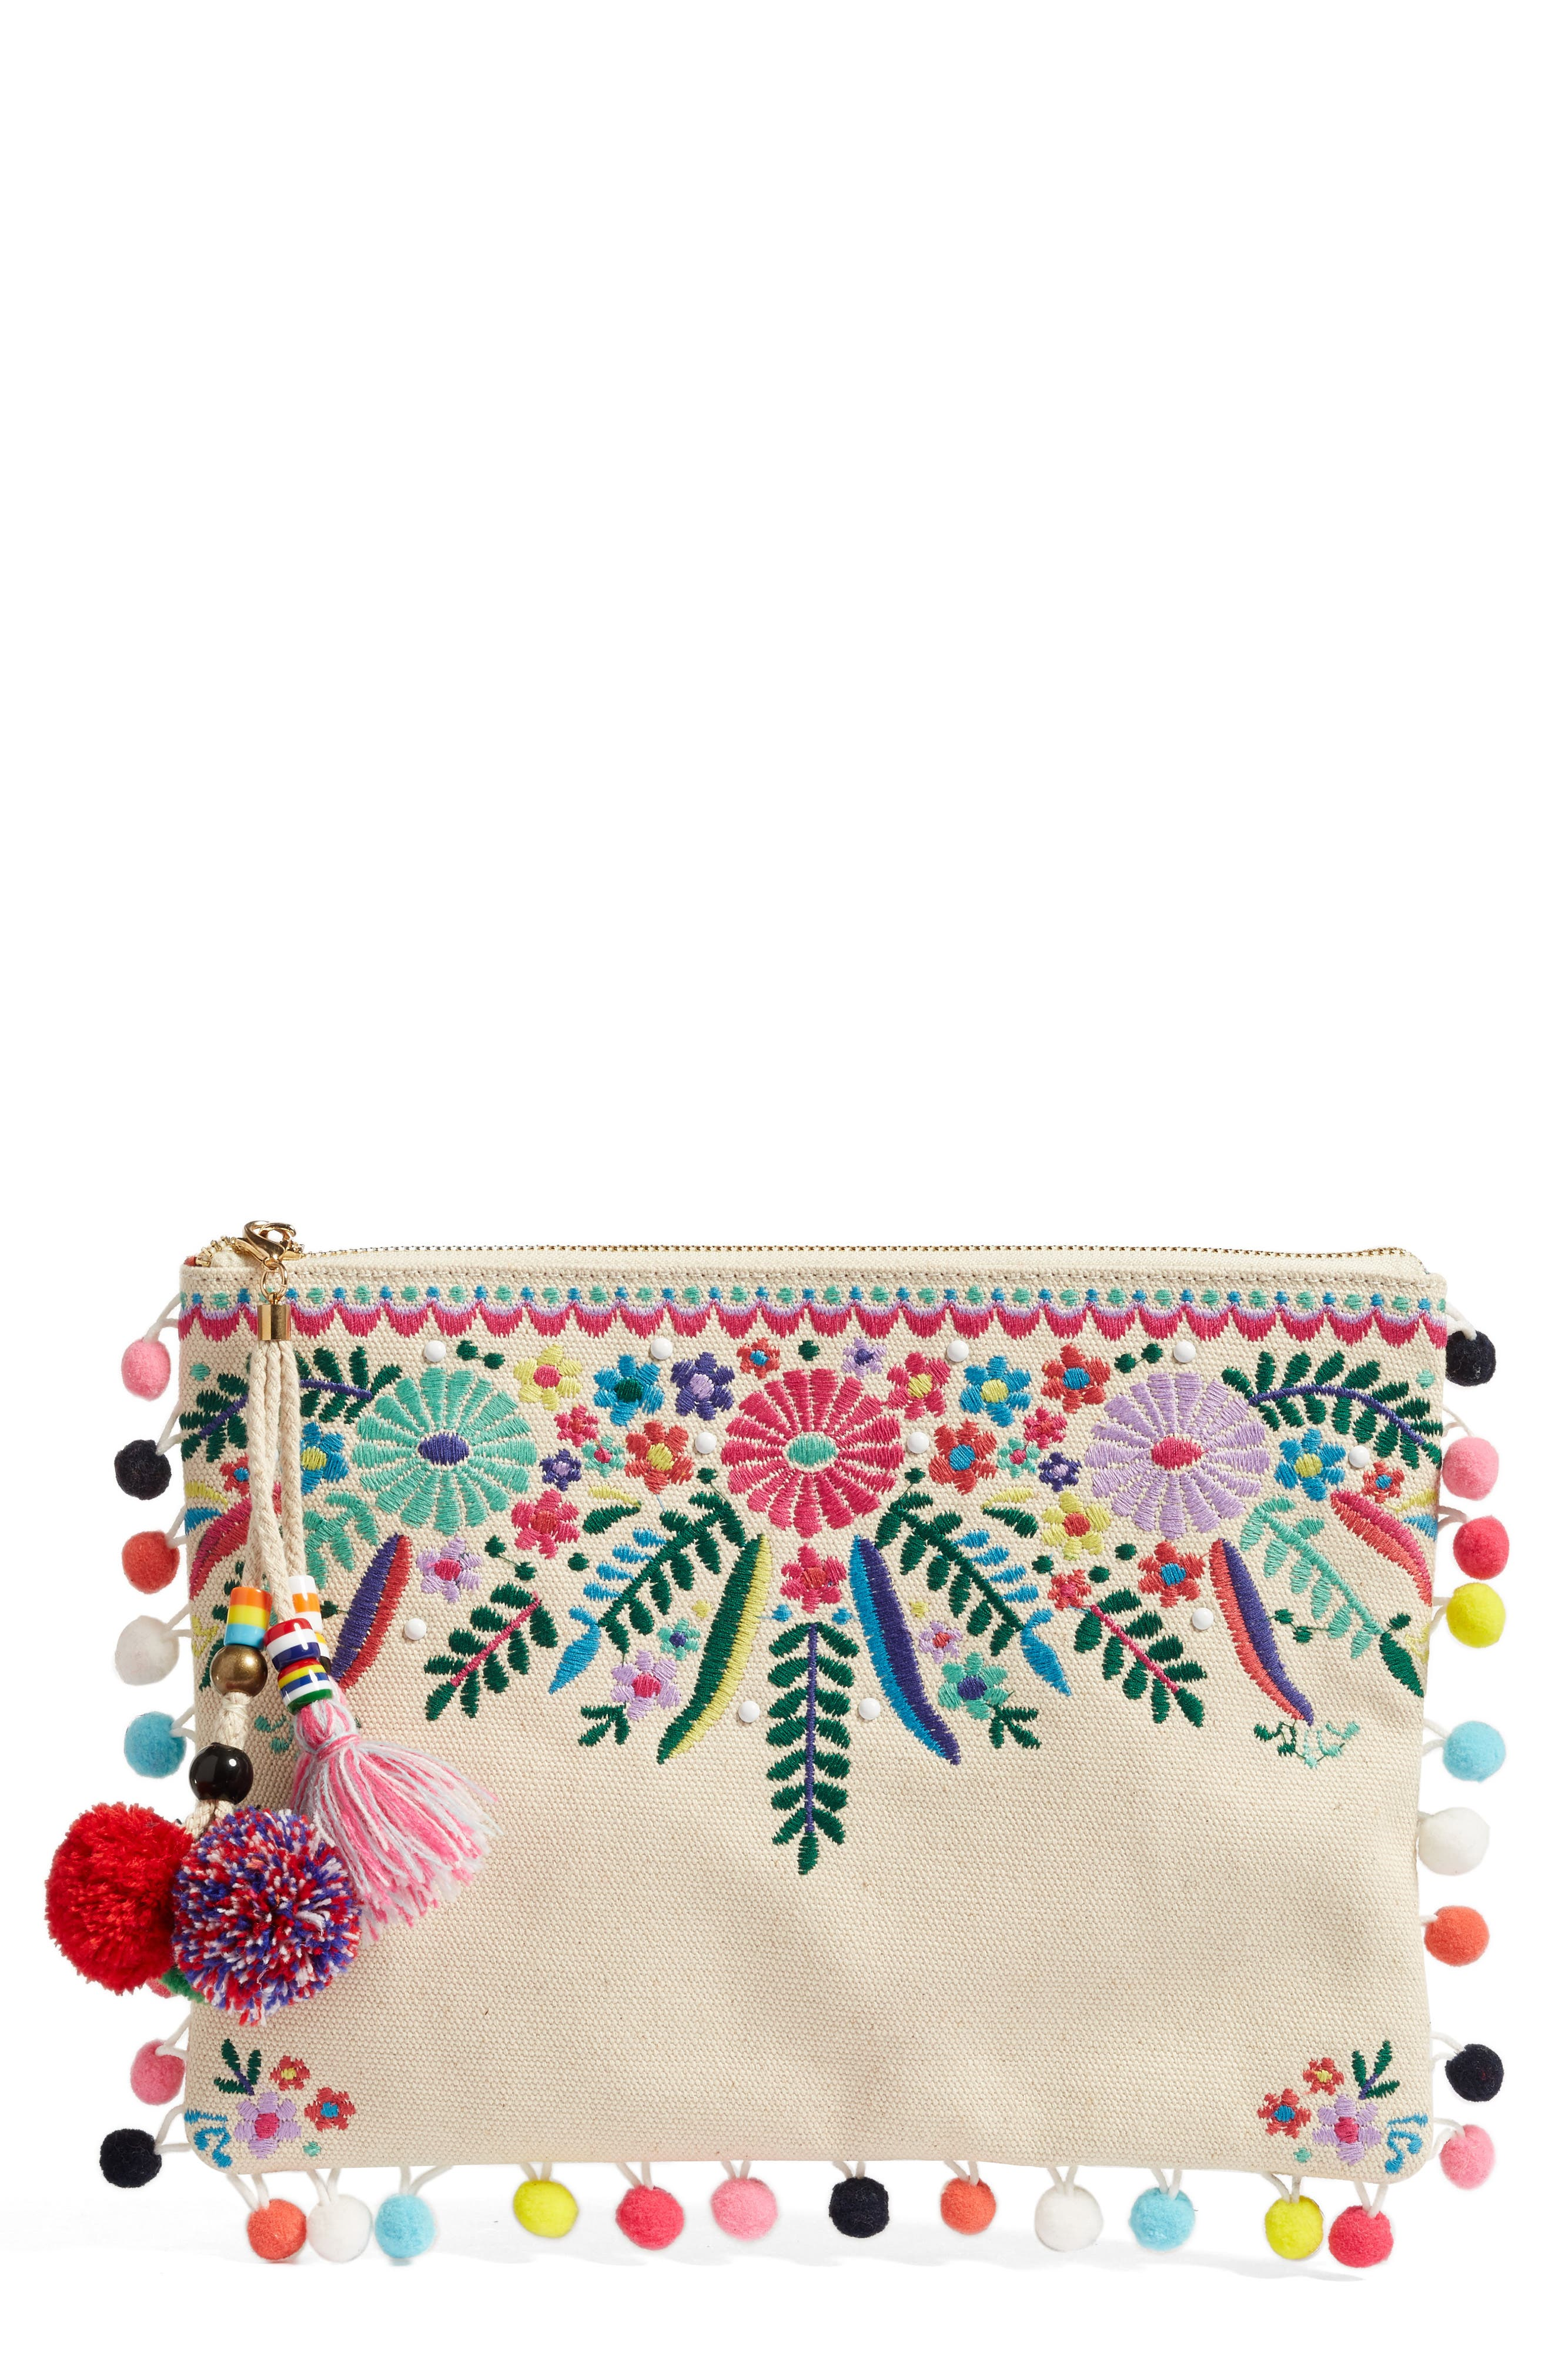 Embroidered Clutch,                             Main thumbnail 1, color,                             250